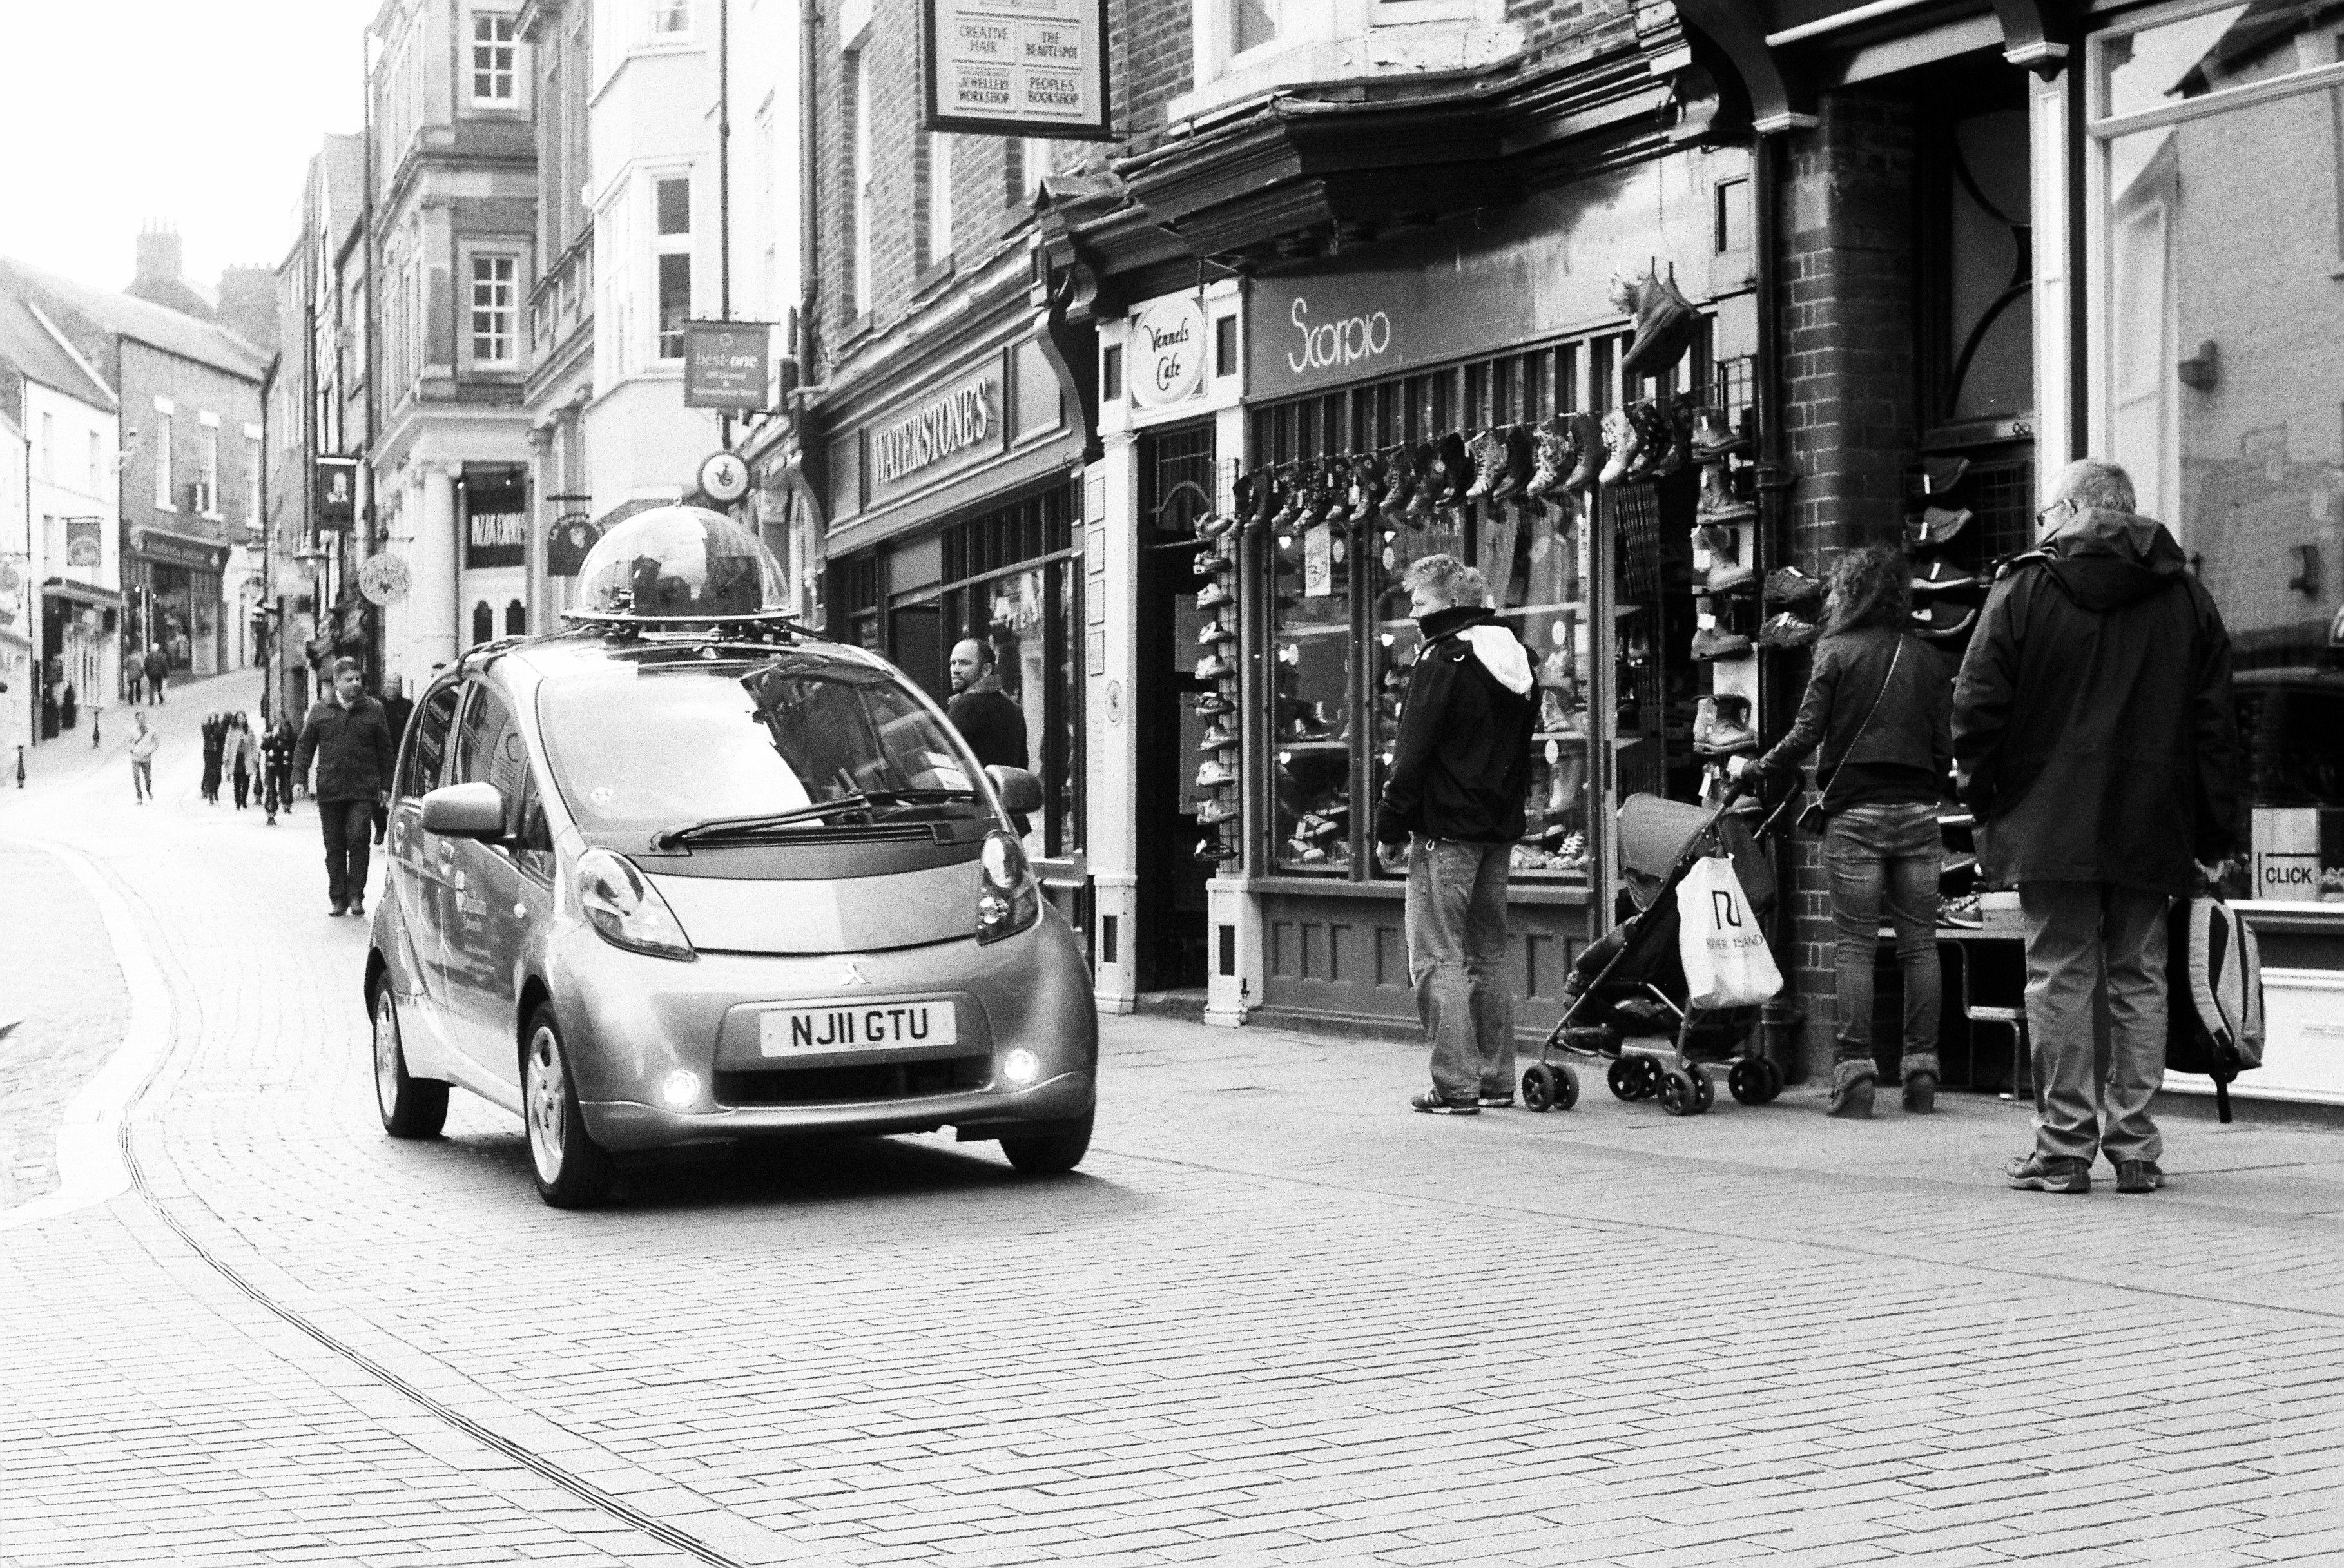 Twizzy Car in Durham City